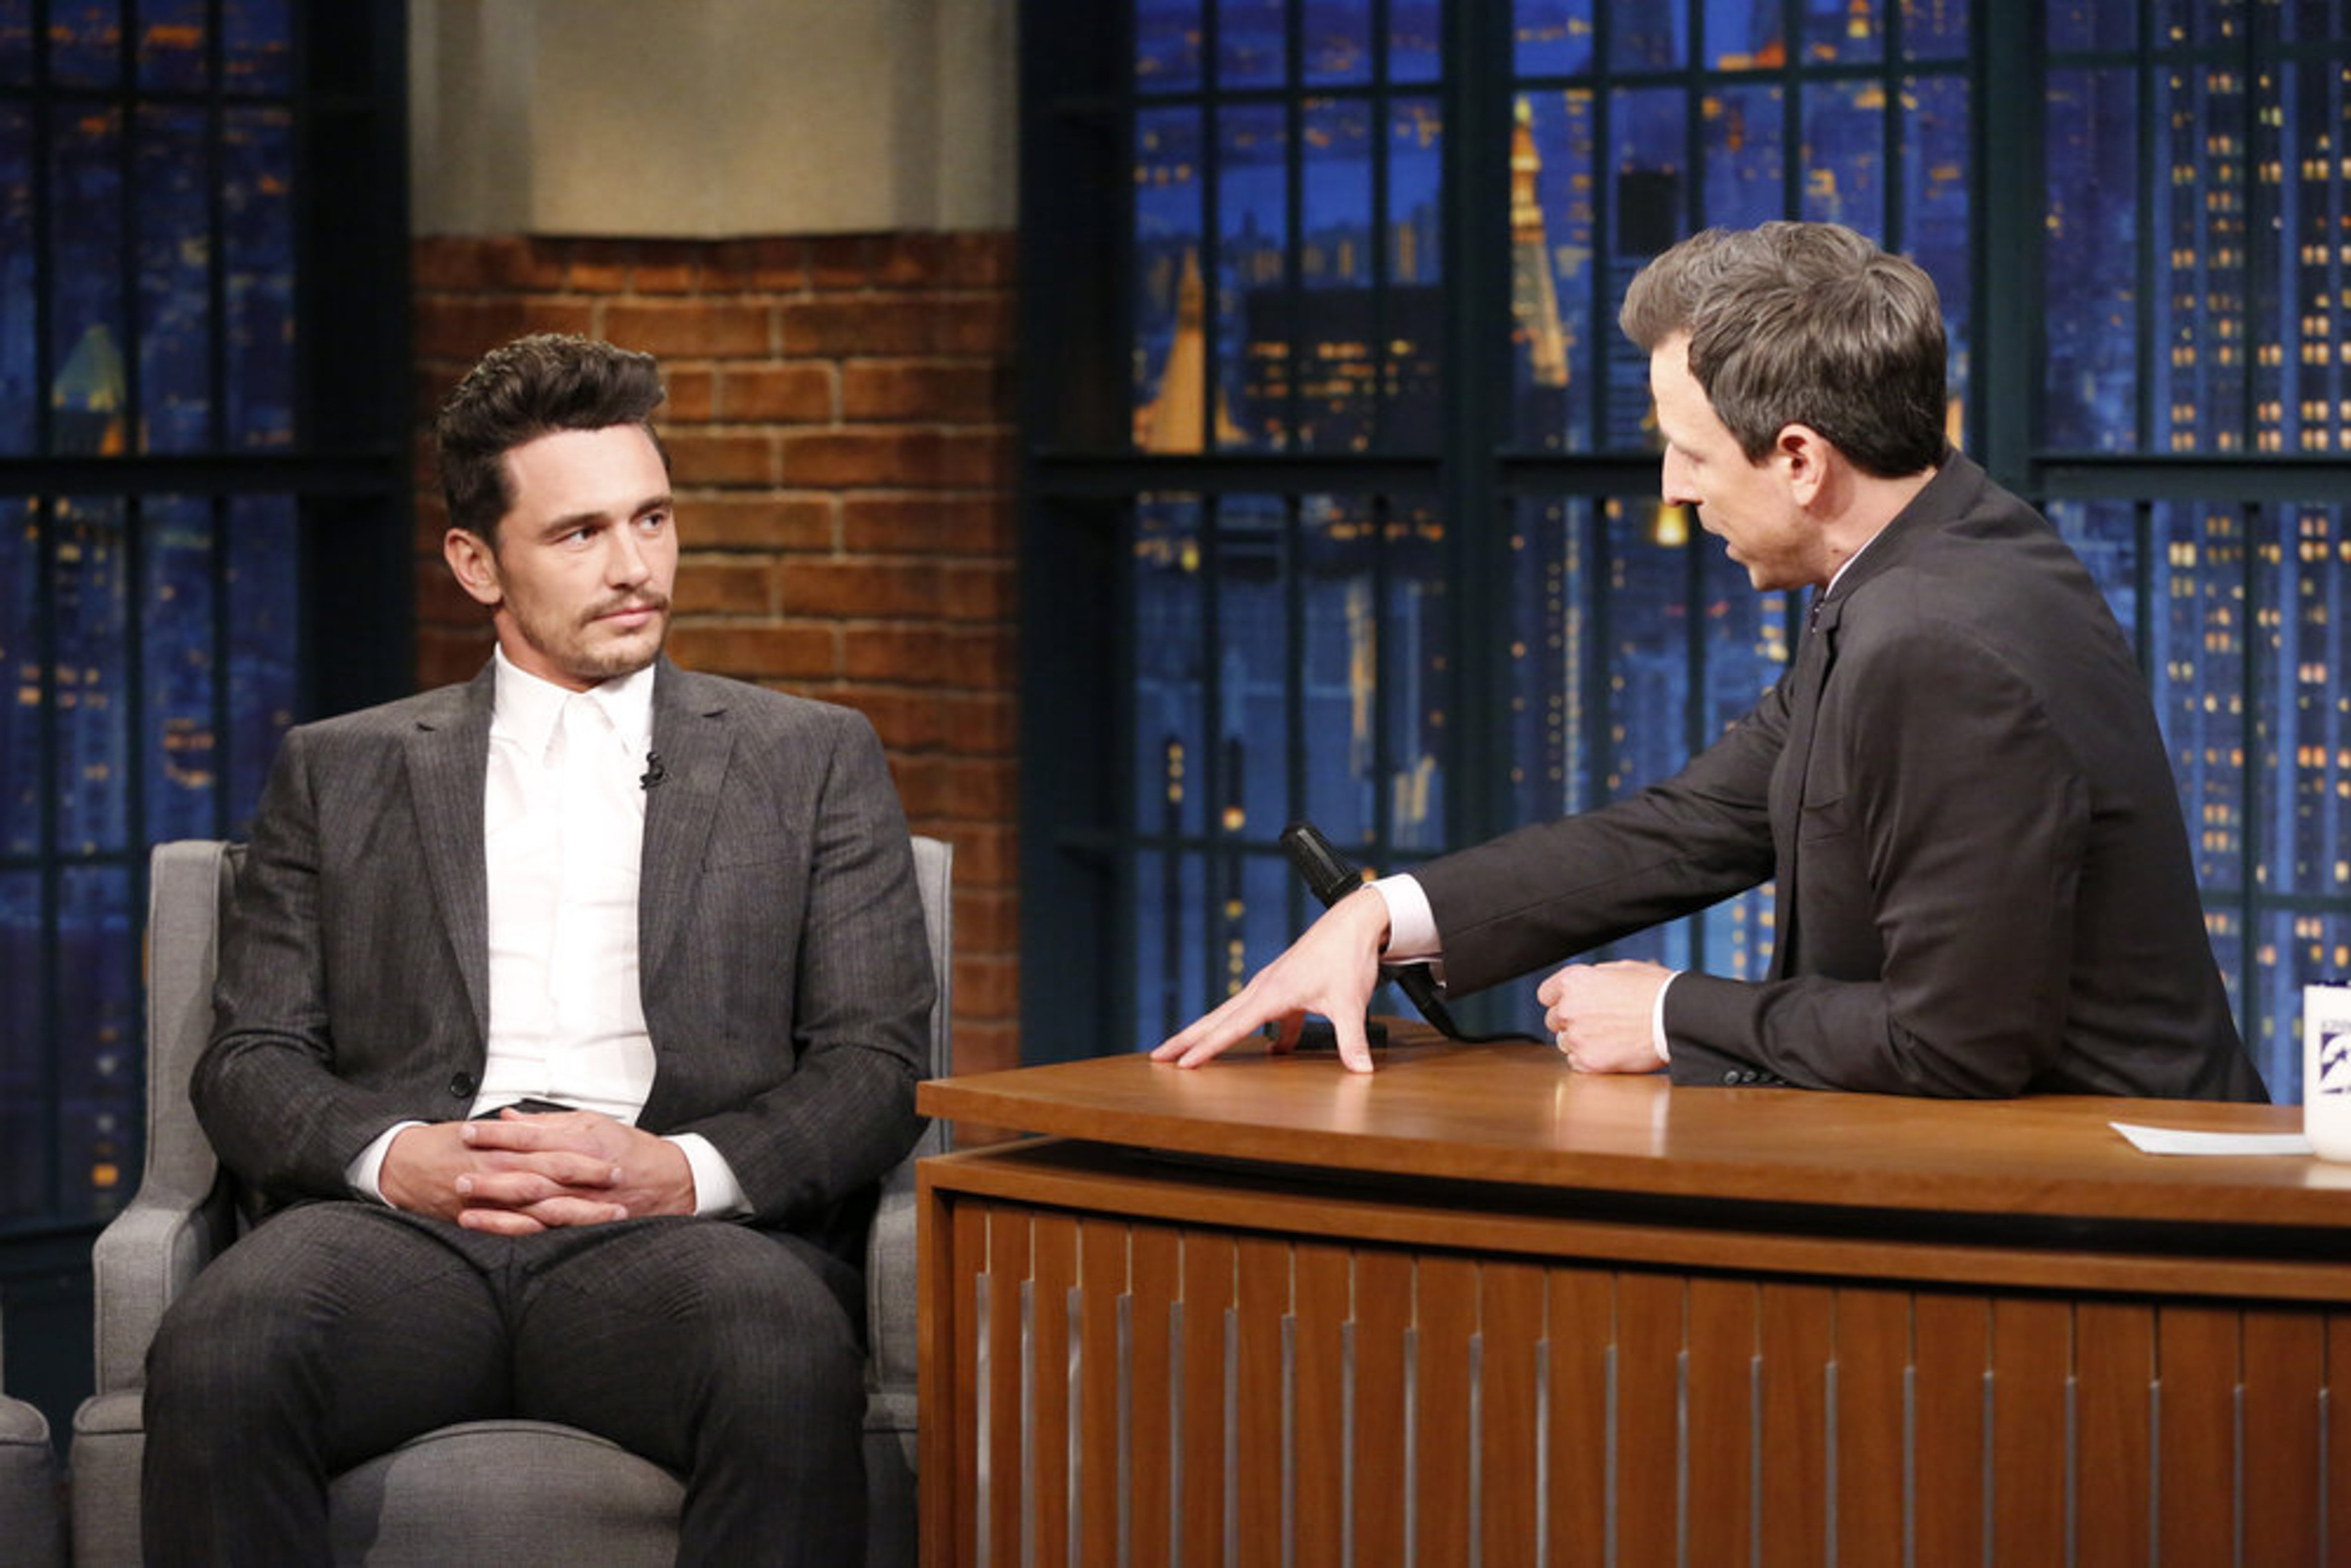 James Franco addressed sexual misconduct allegations against him with Seth Meyers during an interview.